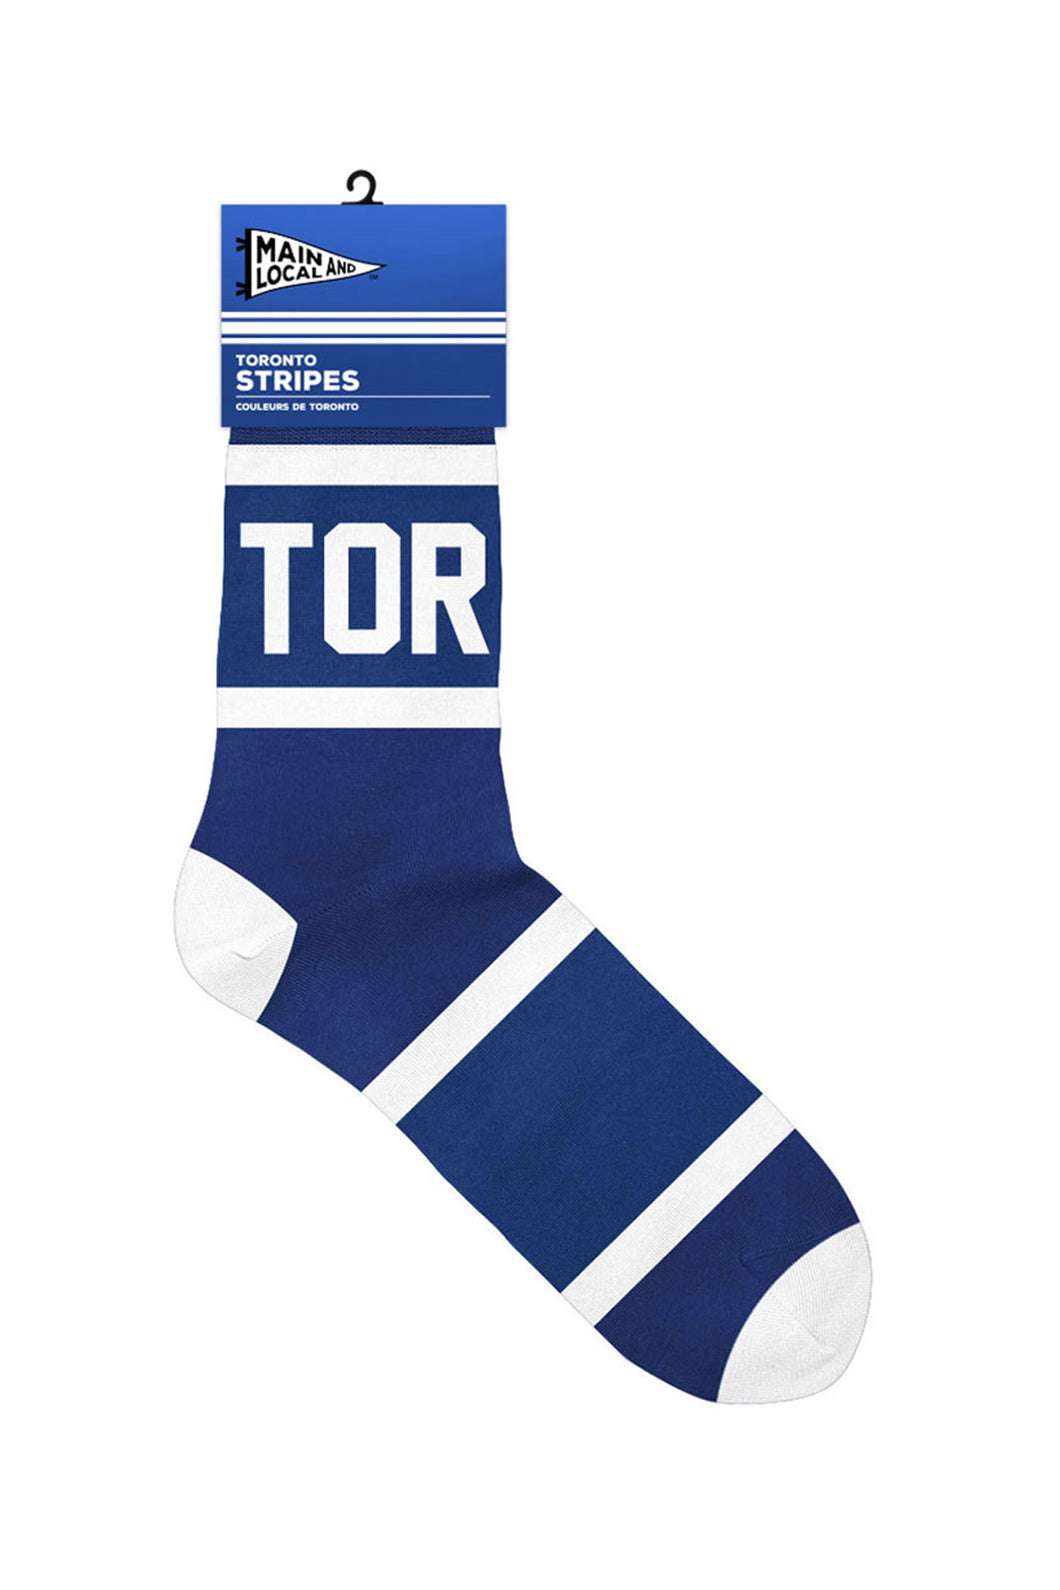 Toronto Stripe Socks